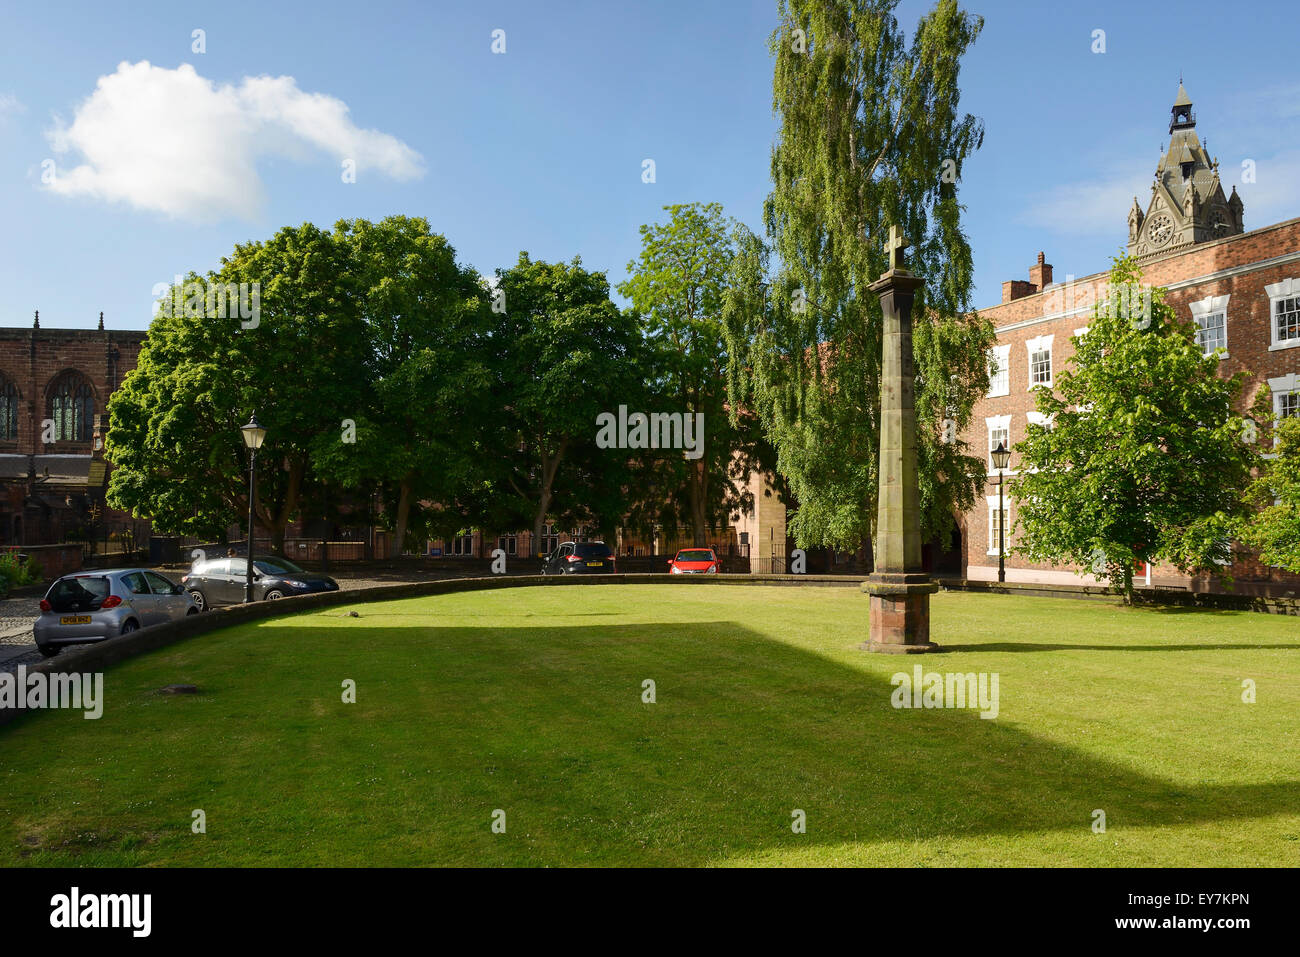 Abbey Square in Chester city centre UK - Stock Image